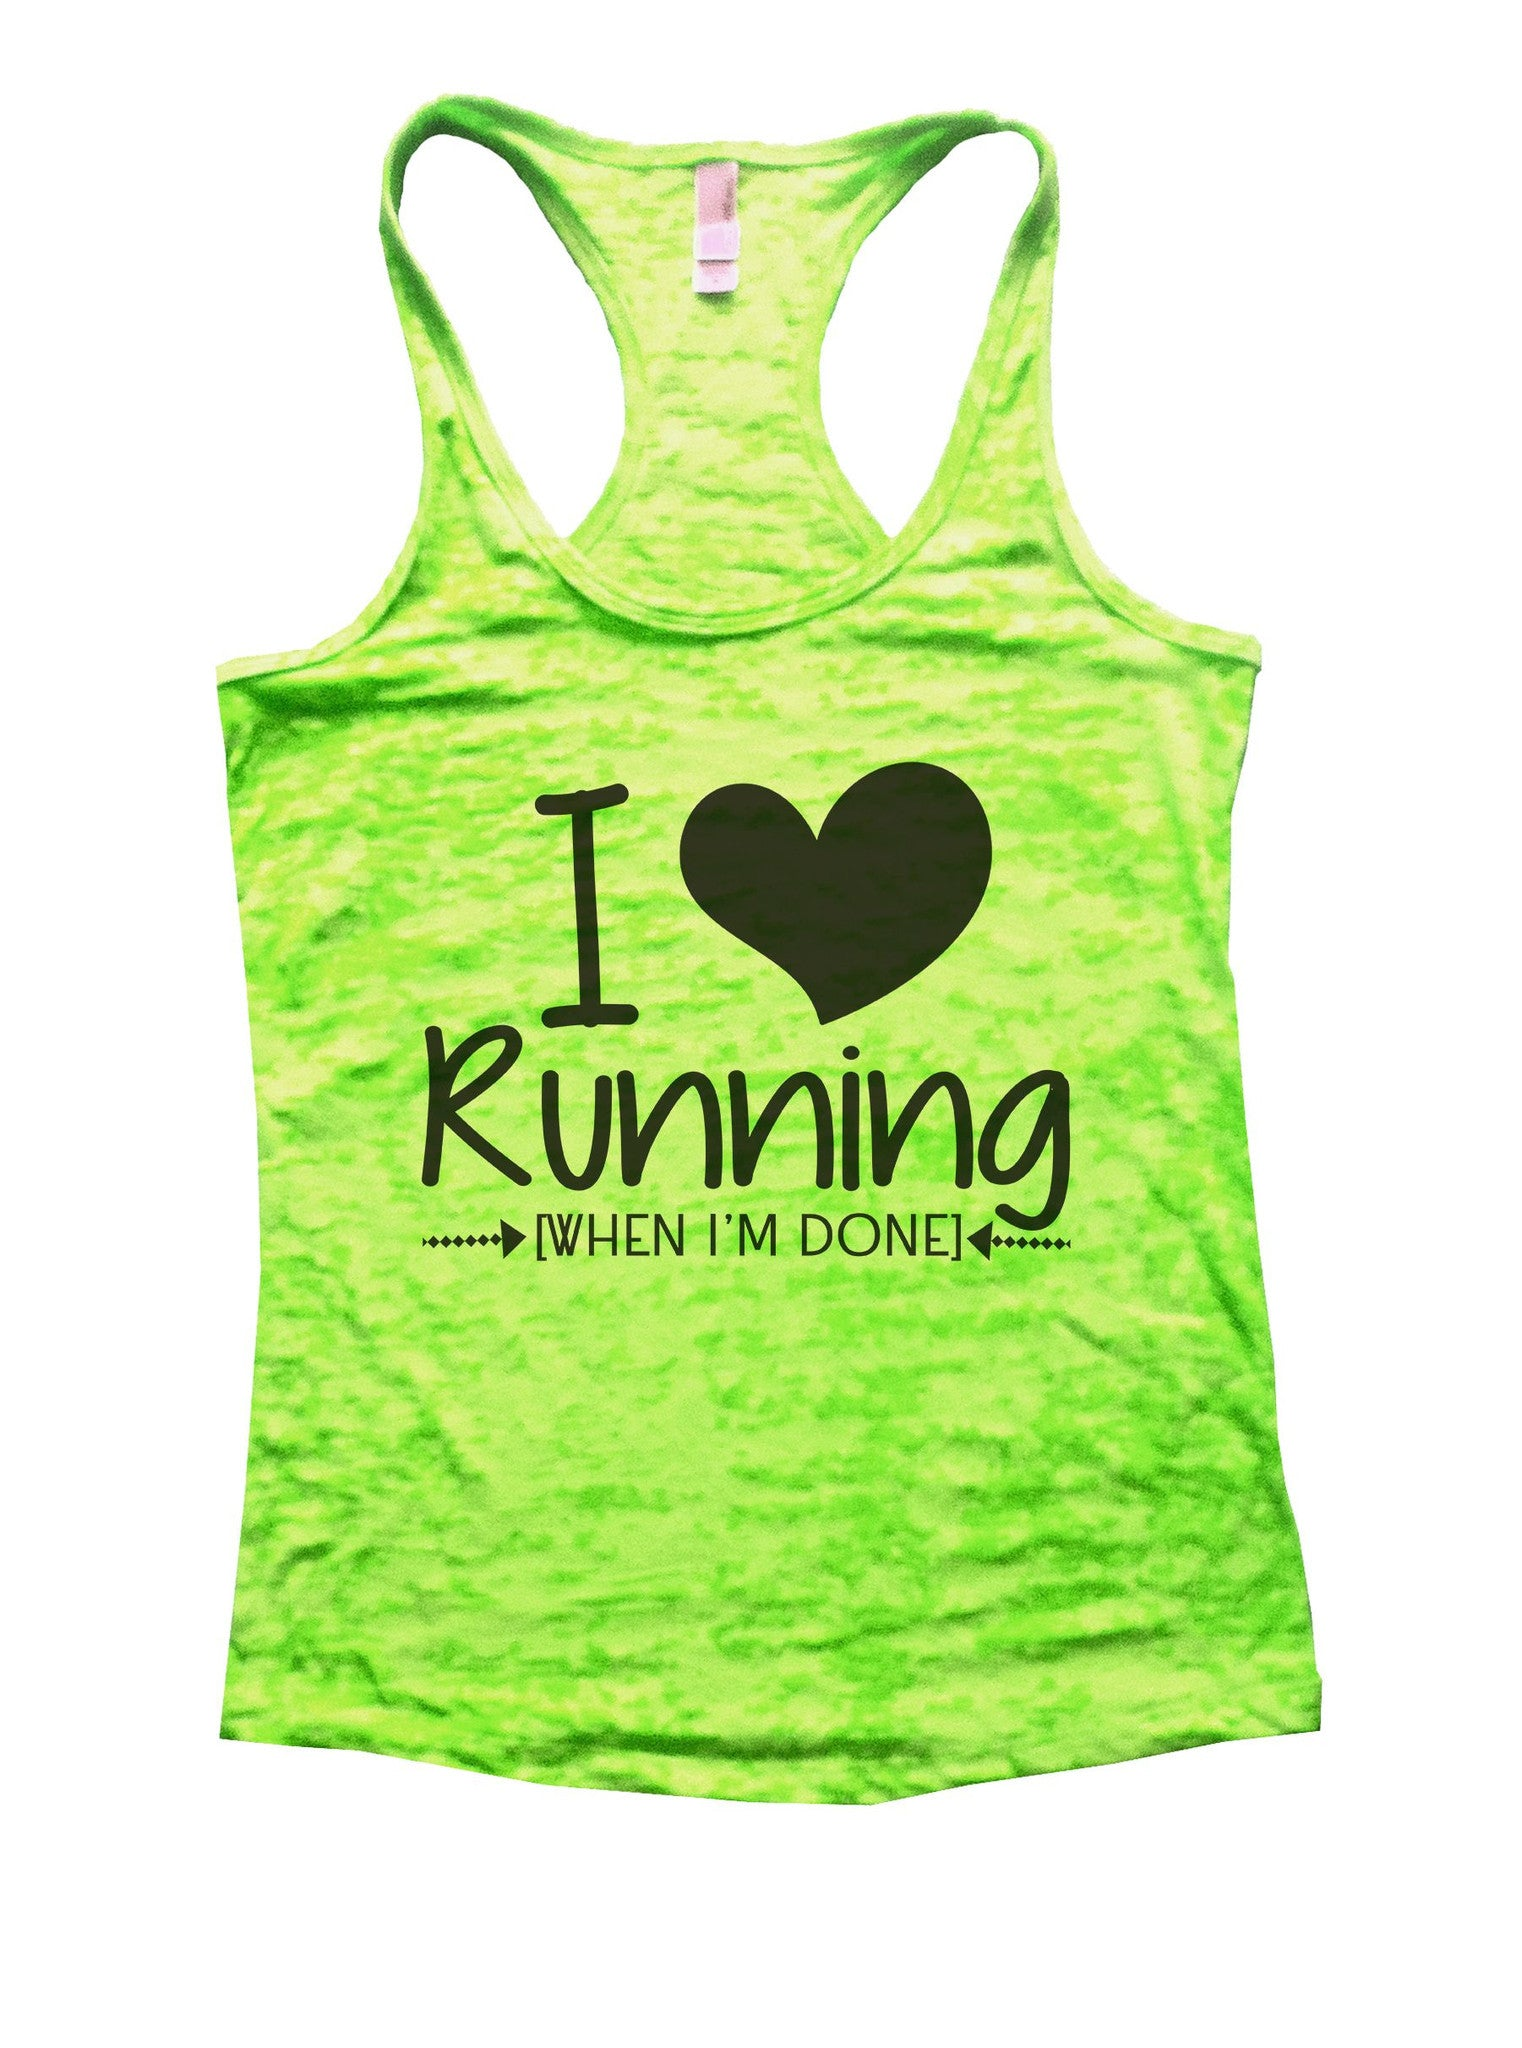 I Love Running [When I'm Done] Burnout Tank Top By BurnoutTankTops.com - 1013 - Funny Shirts Tank Tops Burnouts and Triblends  - 1